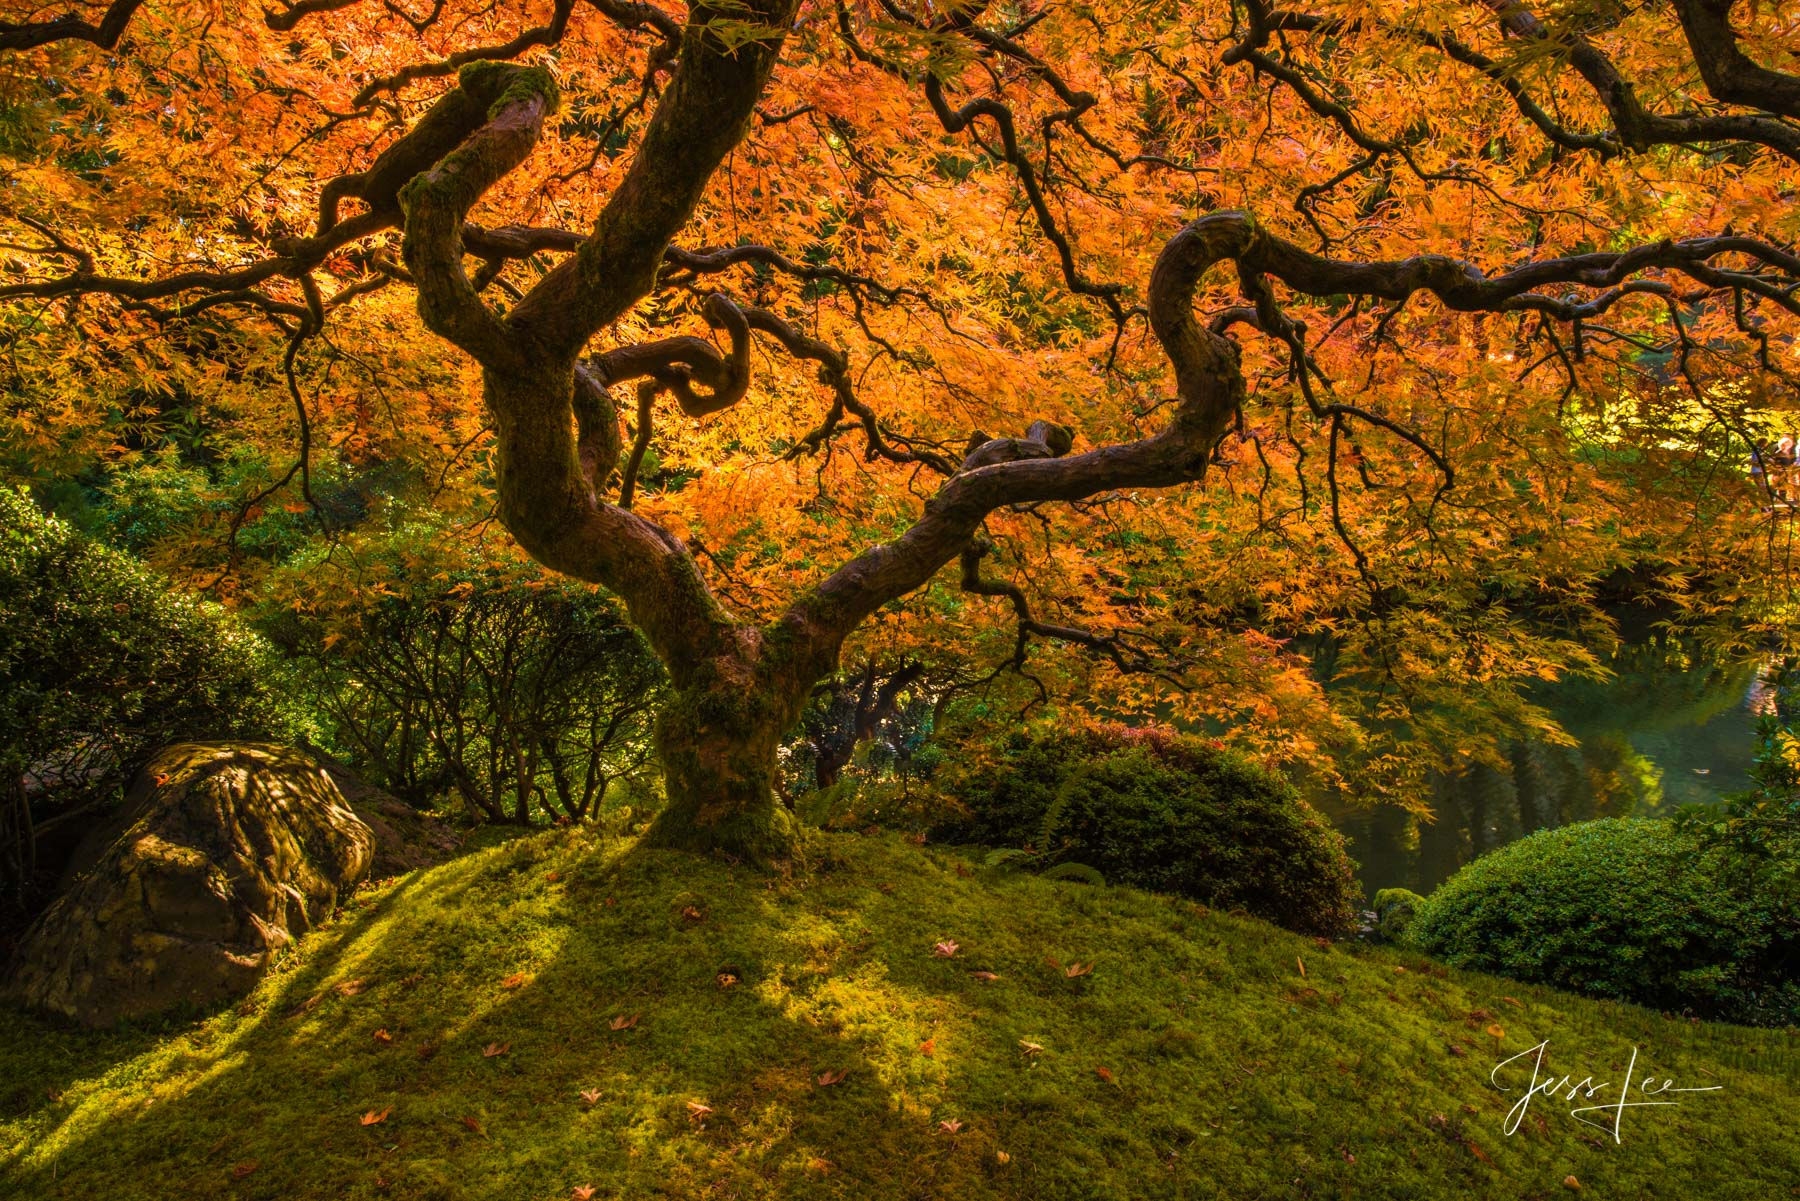 Limited Edition of 50 Exclusive high-resolution Museum Quality Fine Art Prints of this awesome Japanese Maple tree photographed...